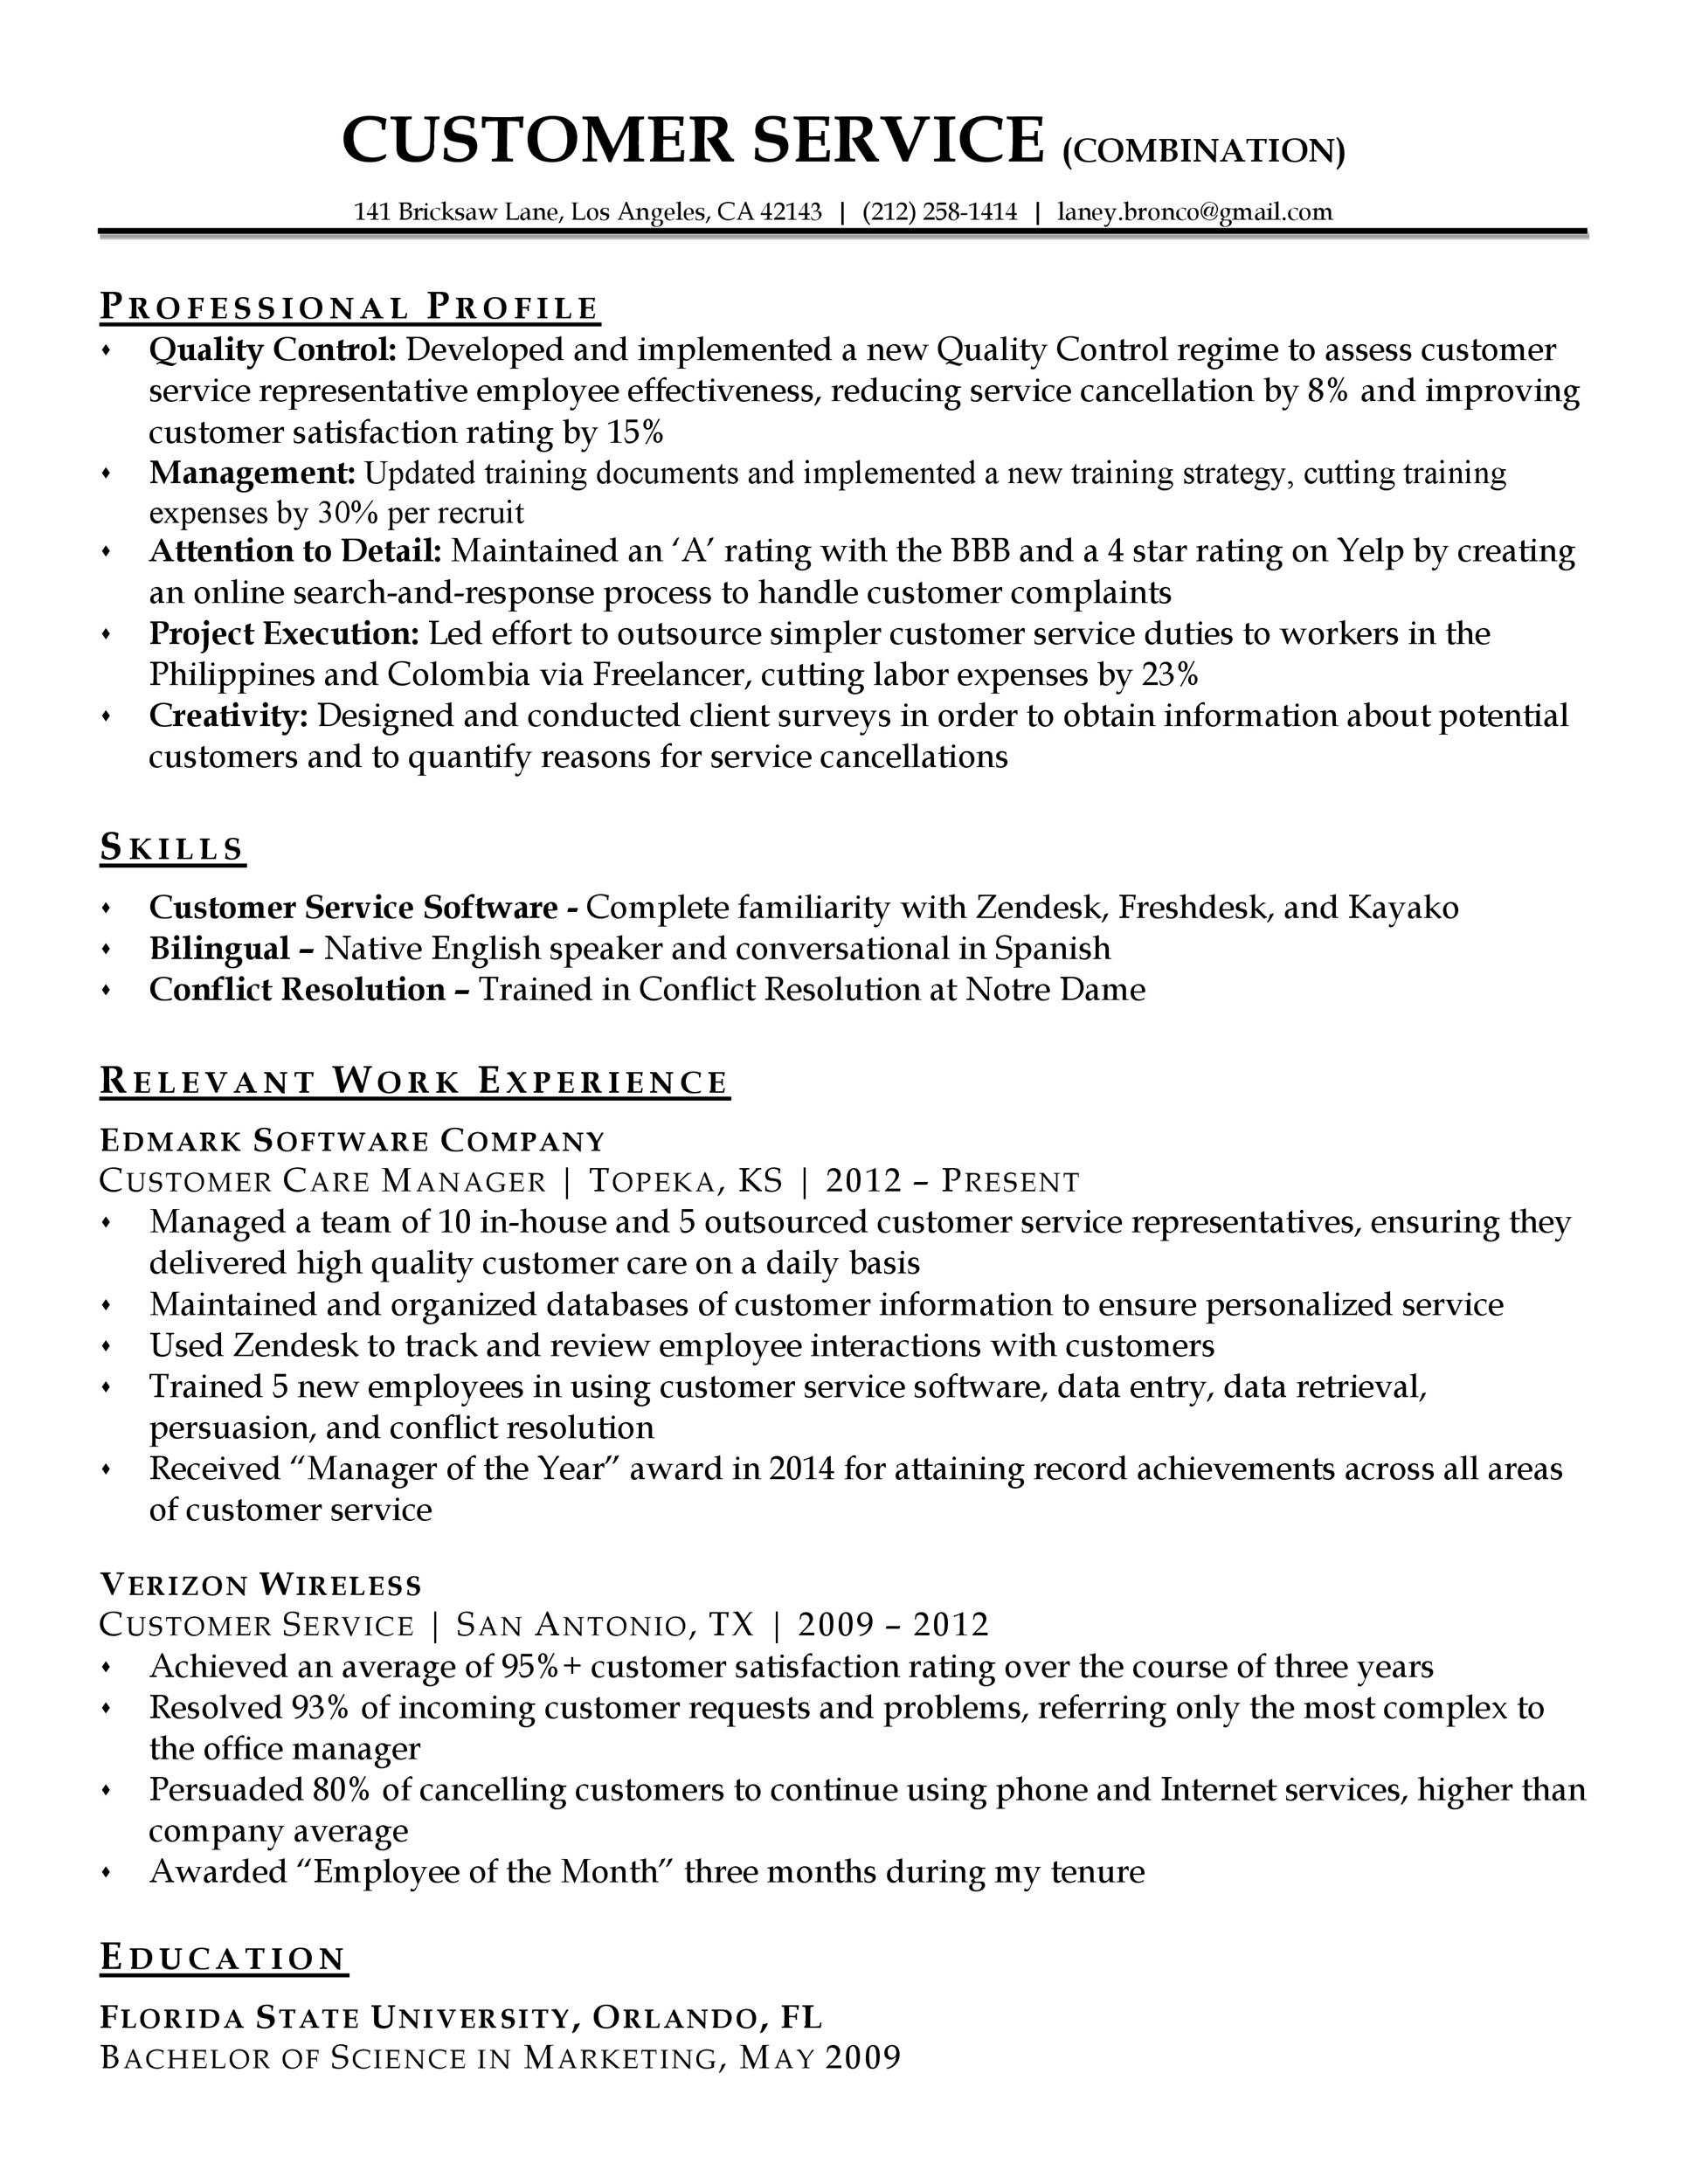 30+ Customer Service Resume Examples - Template Lab - skills resume templates